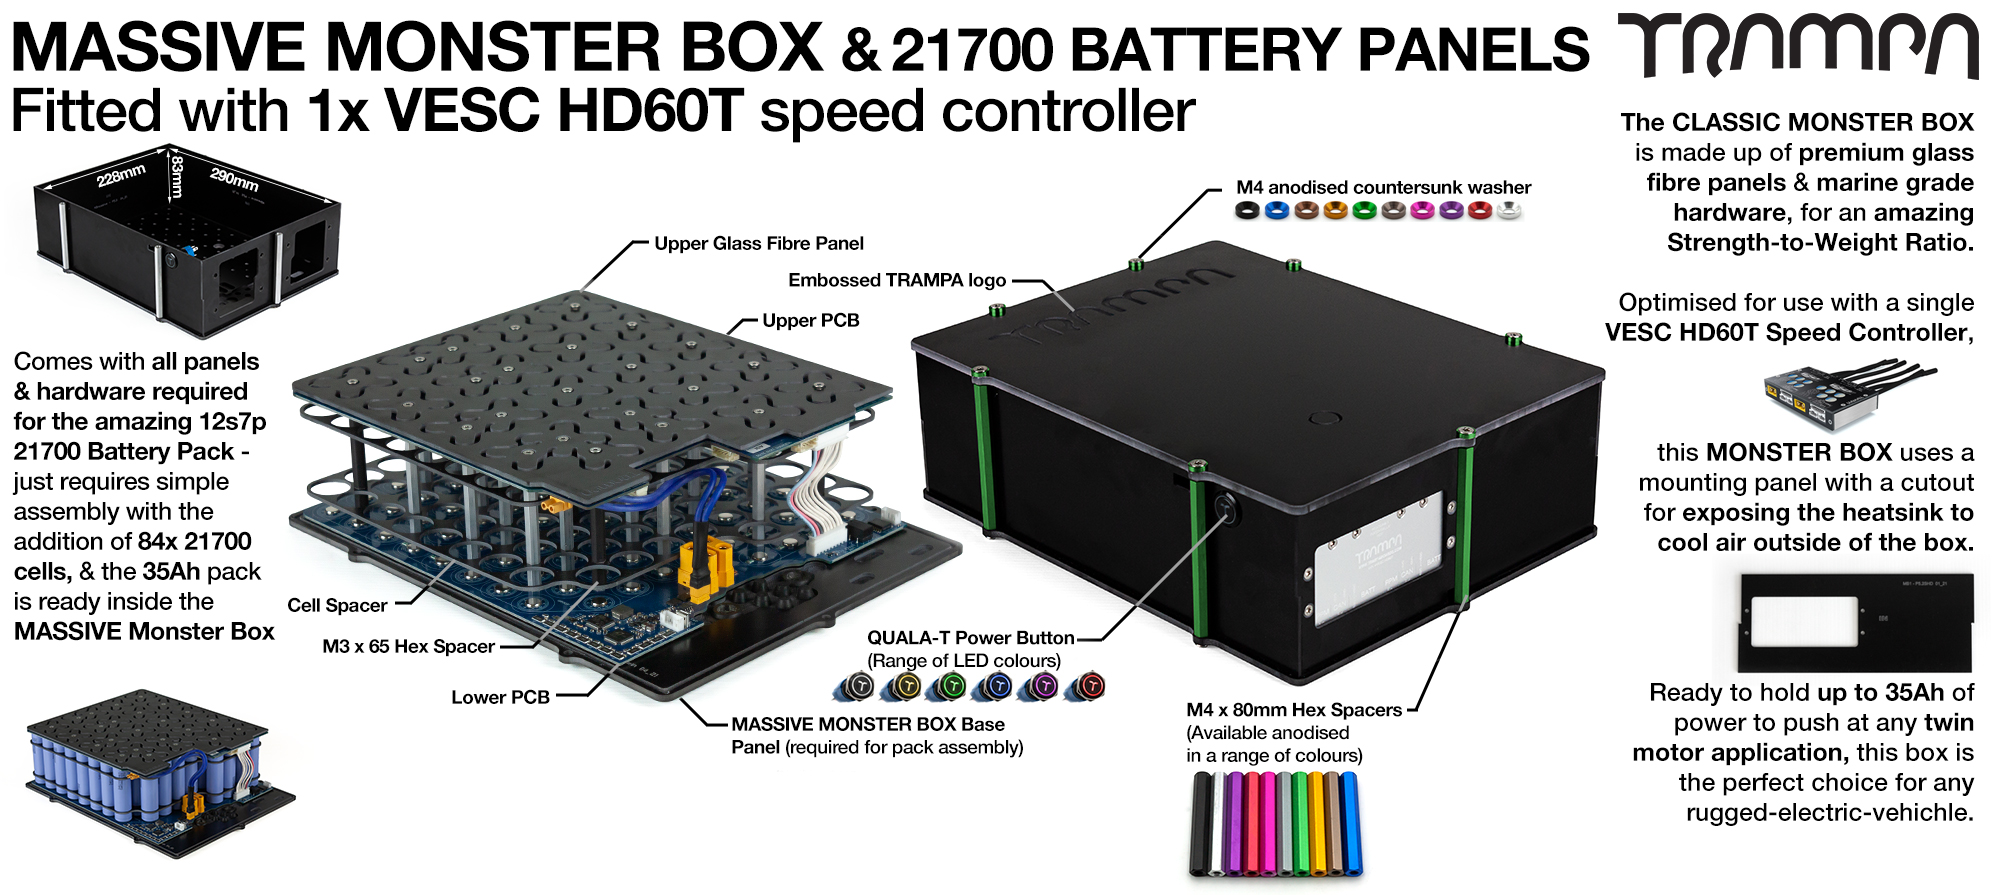 21700 MASSIVE MONSTER Box with 21700 PCB Pack with 1x VESC HD-60Twin - NO CELLS